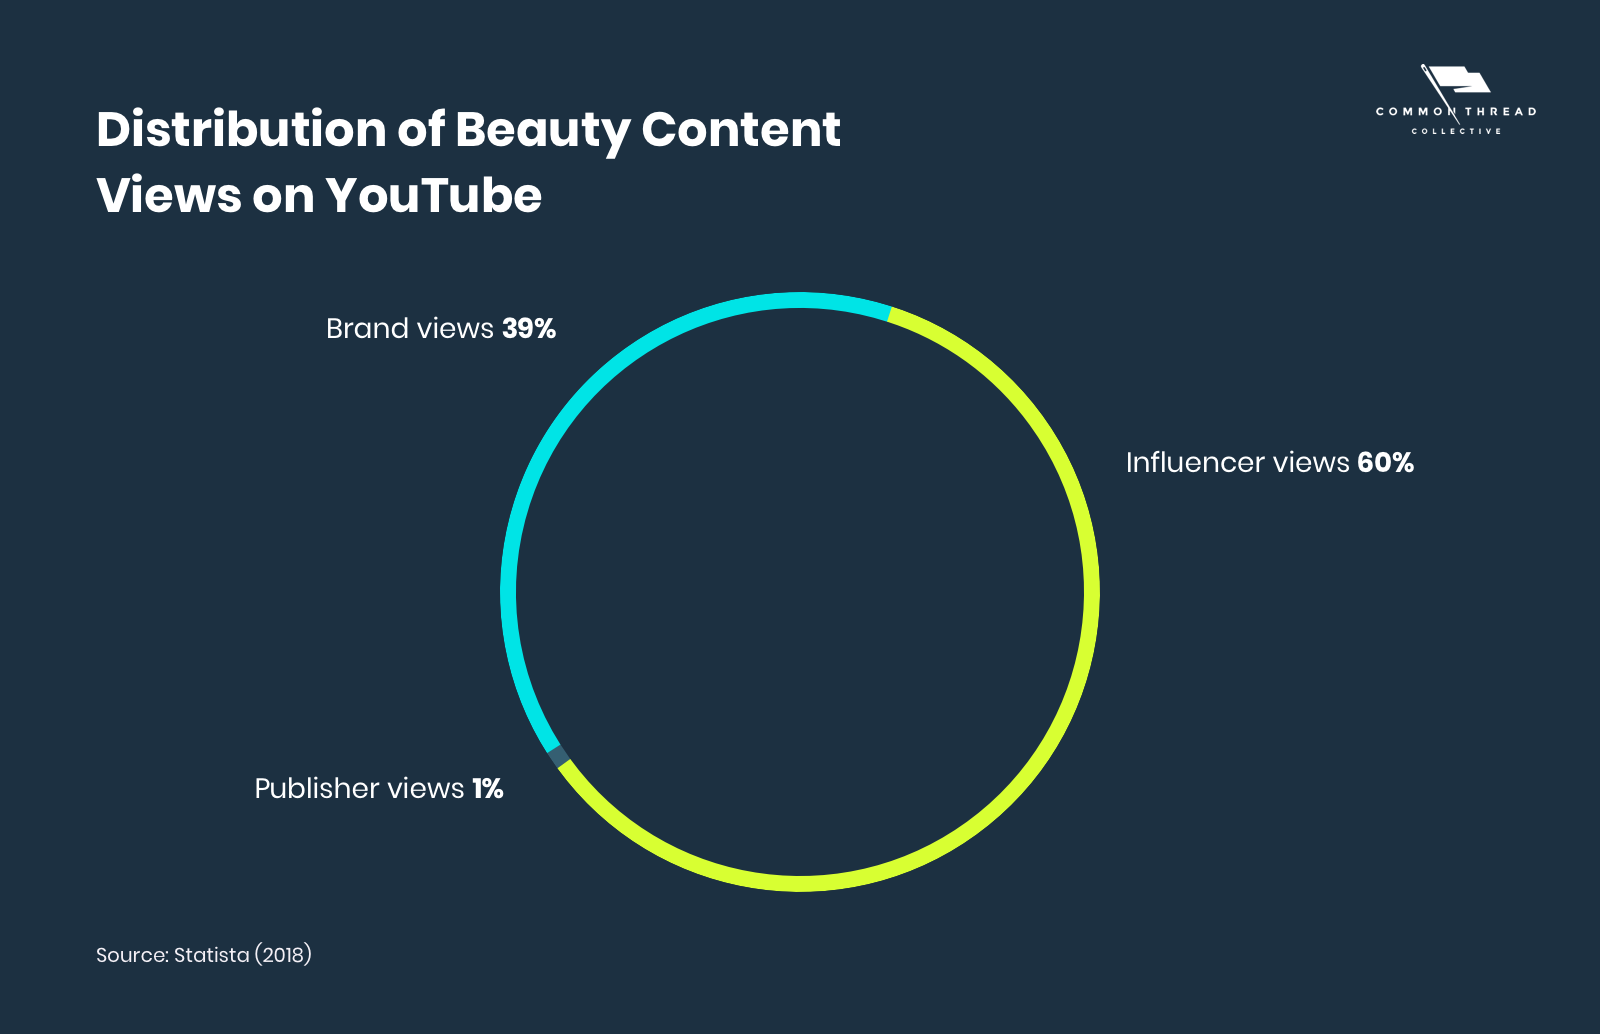 Distribution of Beauty Content Views on YouTube